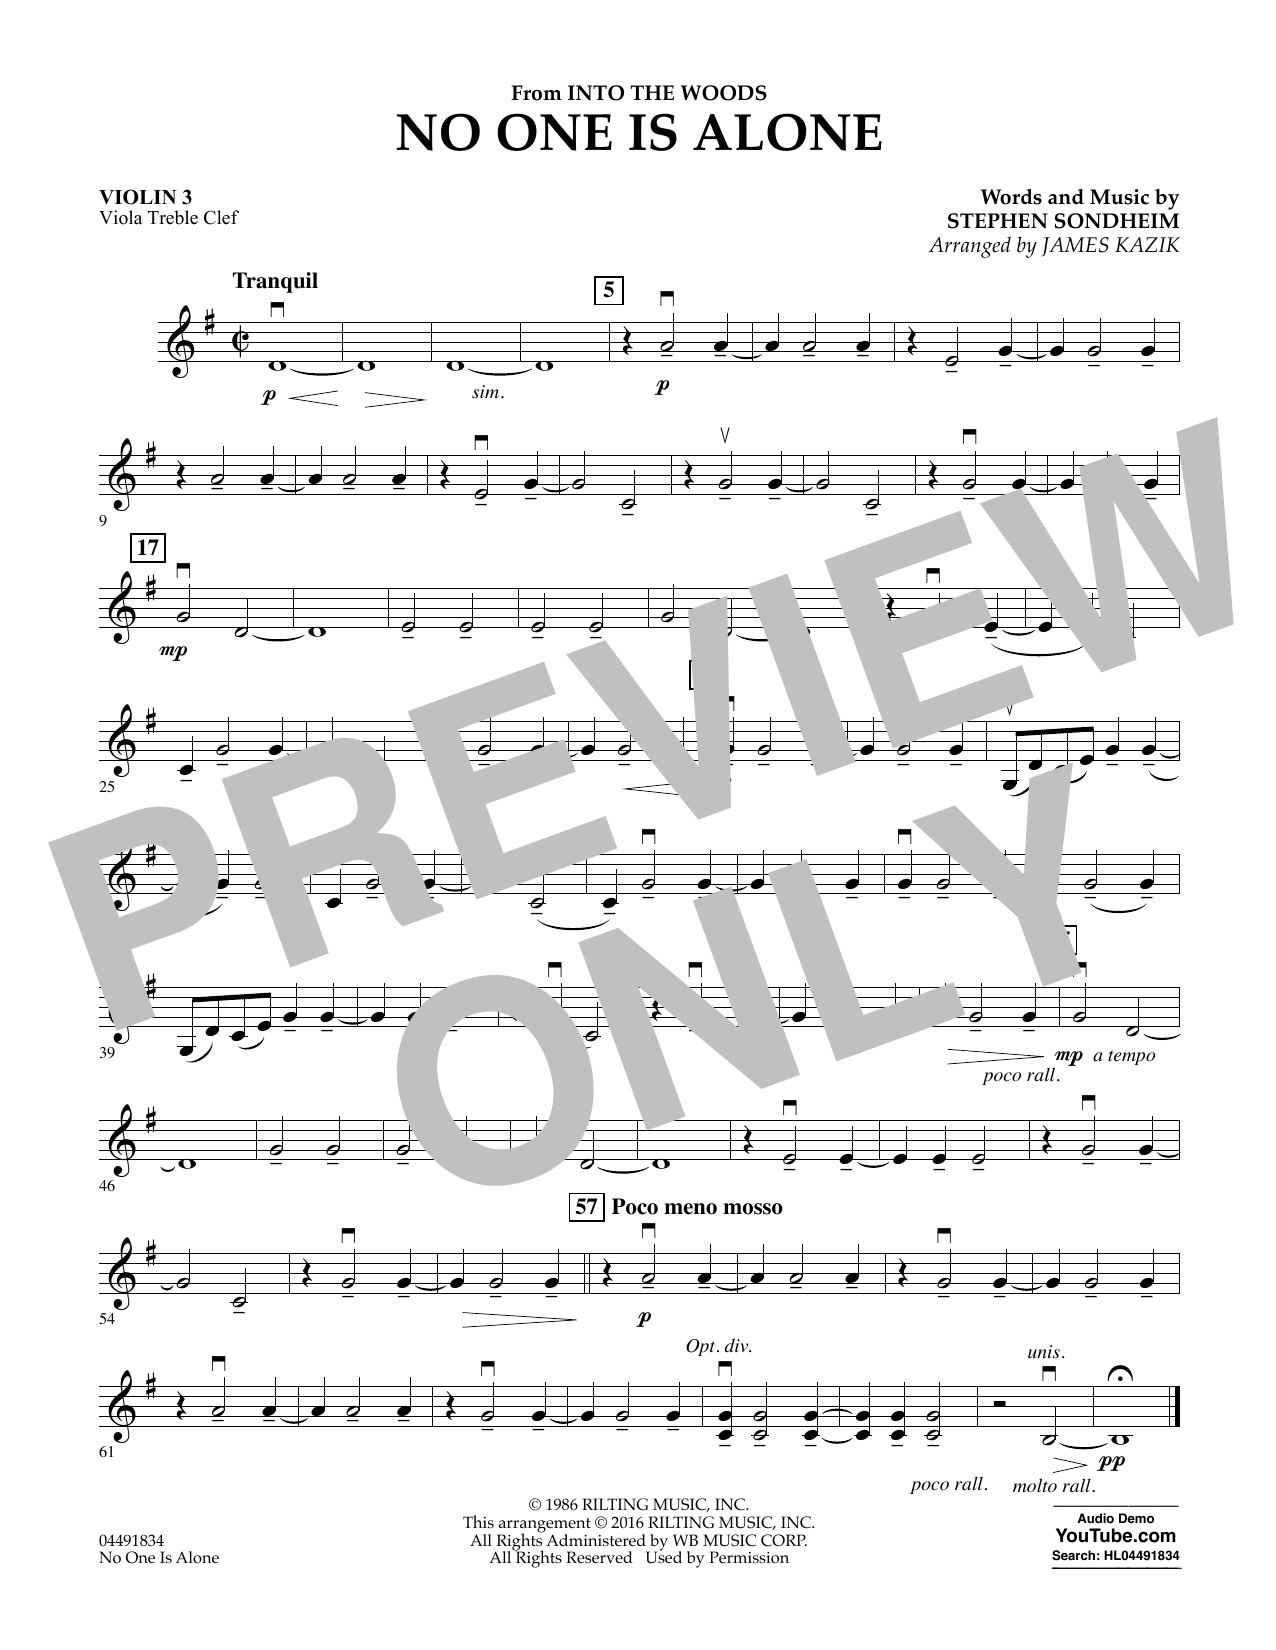 No One Is Alone (from Into The Woods) - Violin 3 (Viola Treble Clef) Sheet Music